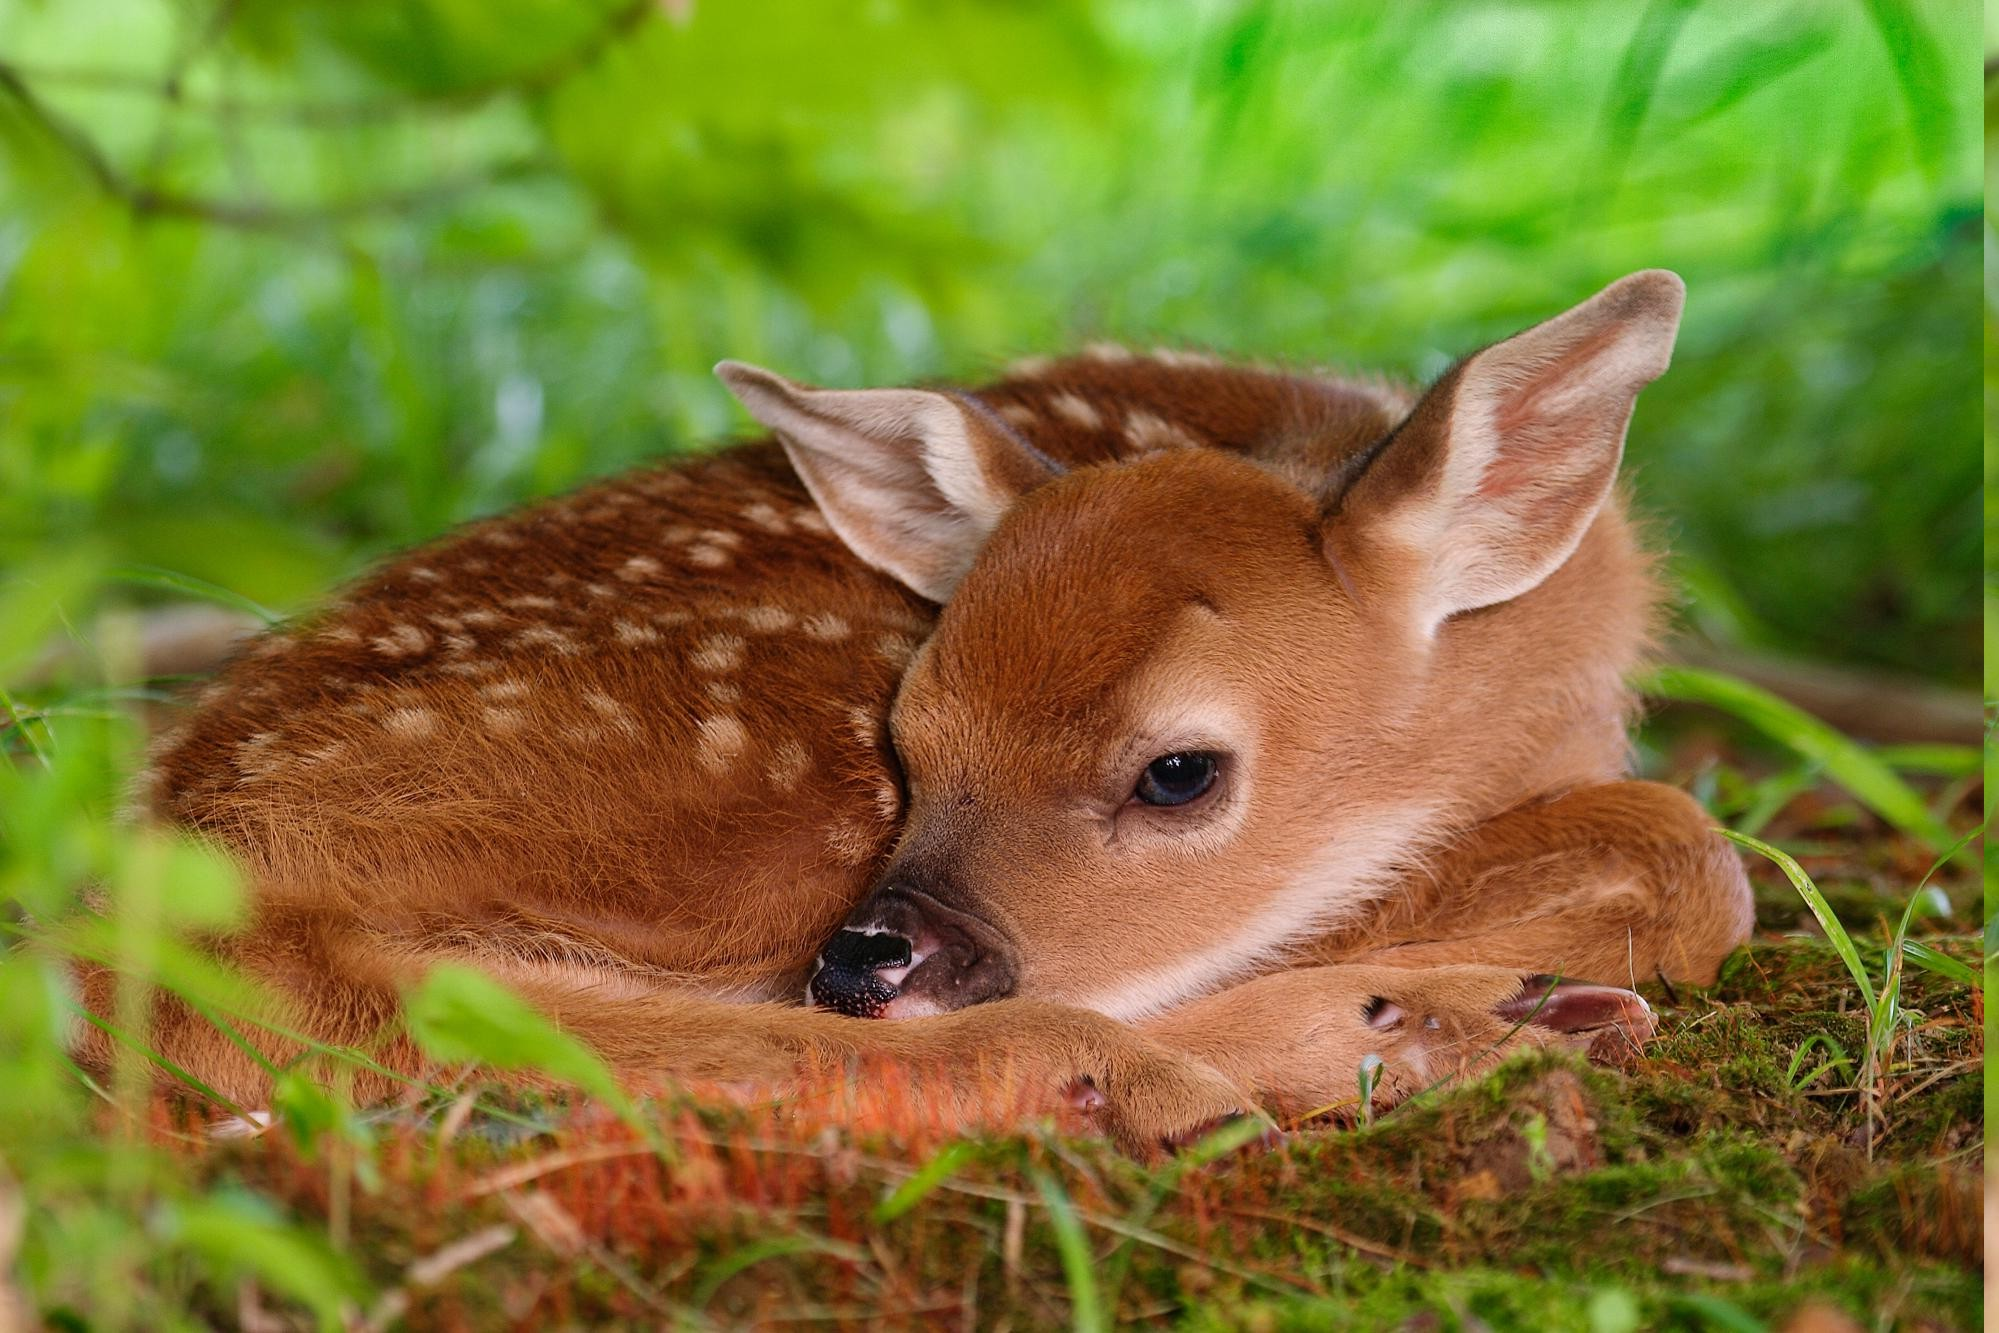 animals nature baby deer desktop background fawns backgrounds wallpapers mobile screen wallup